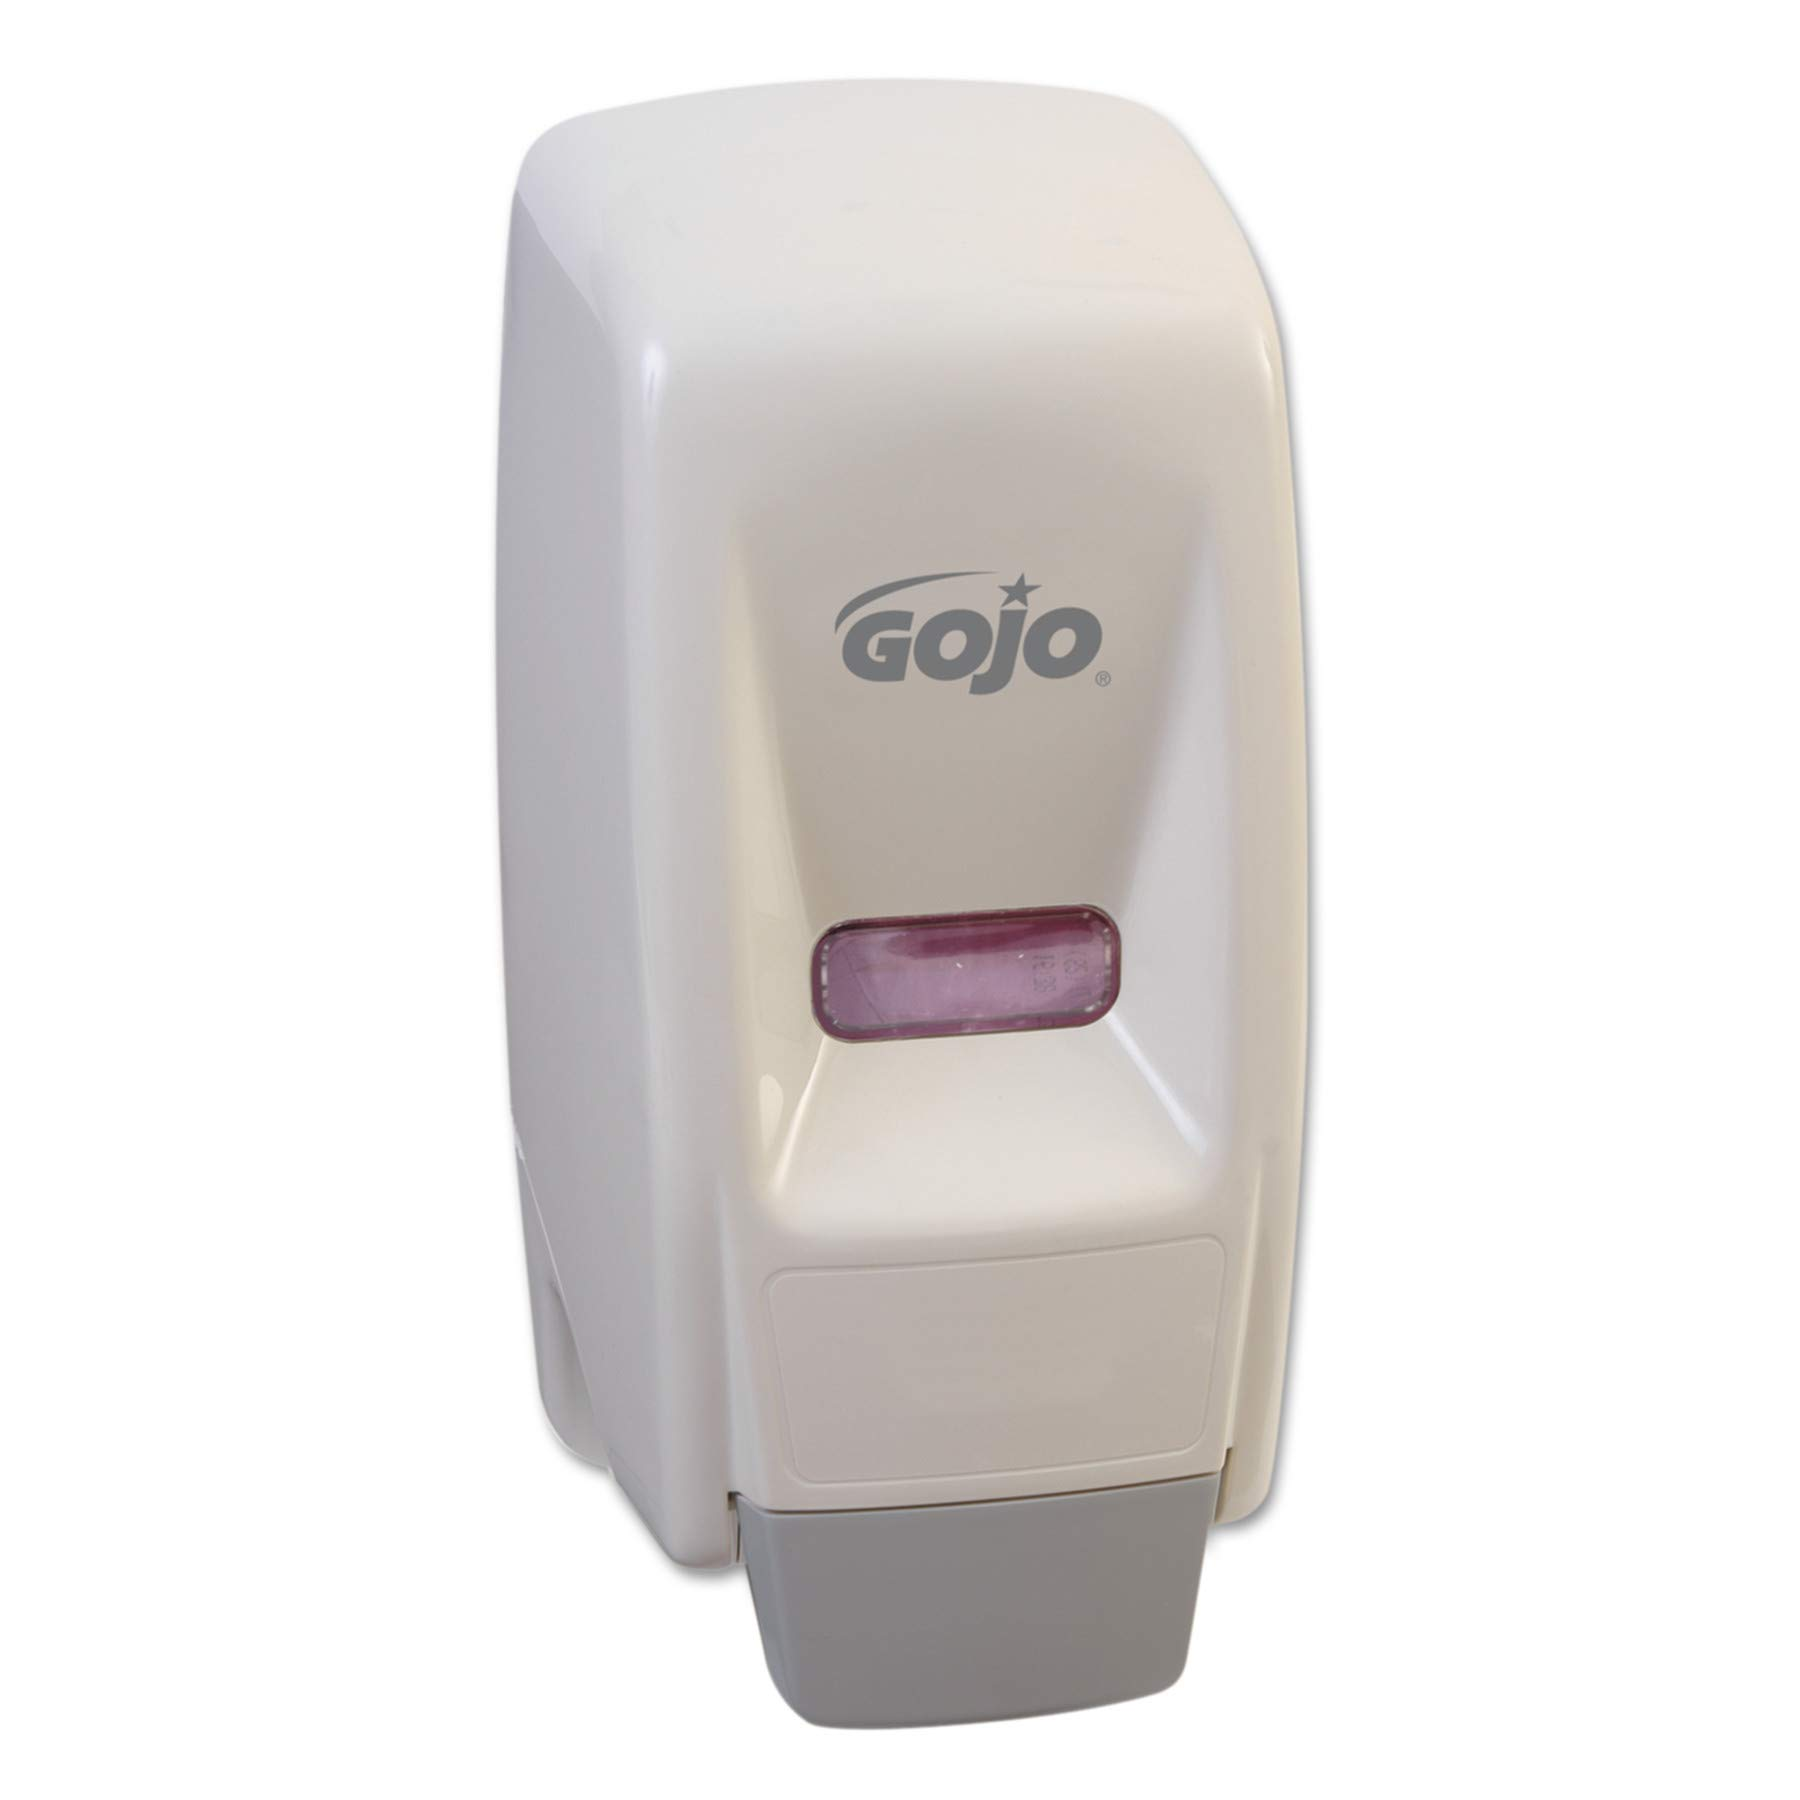 GOJO 903412 Bag-In-Box Liquid Soap Dispenser, 800mL, 5 3/4w x 5 1/2d x 11 1/8h, White